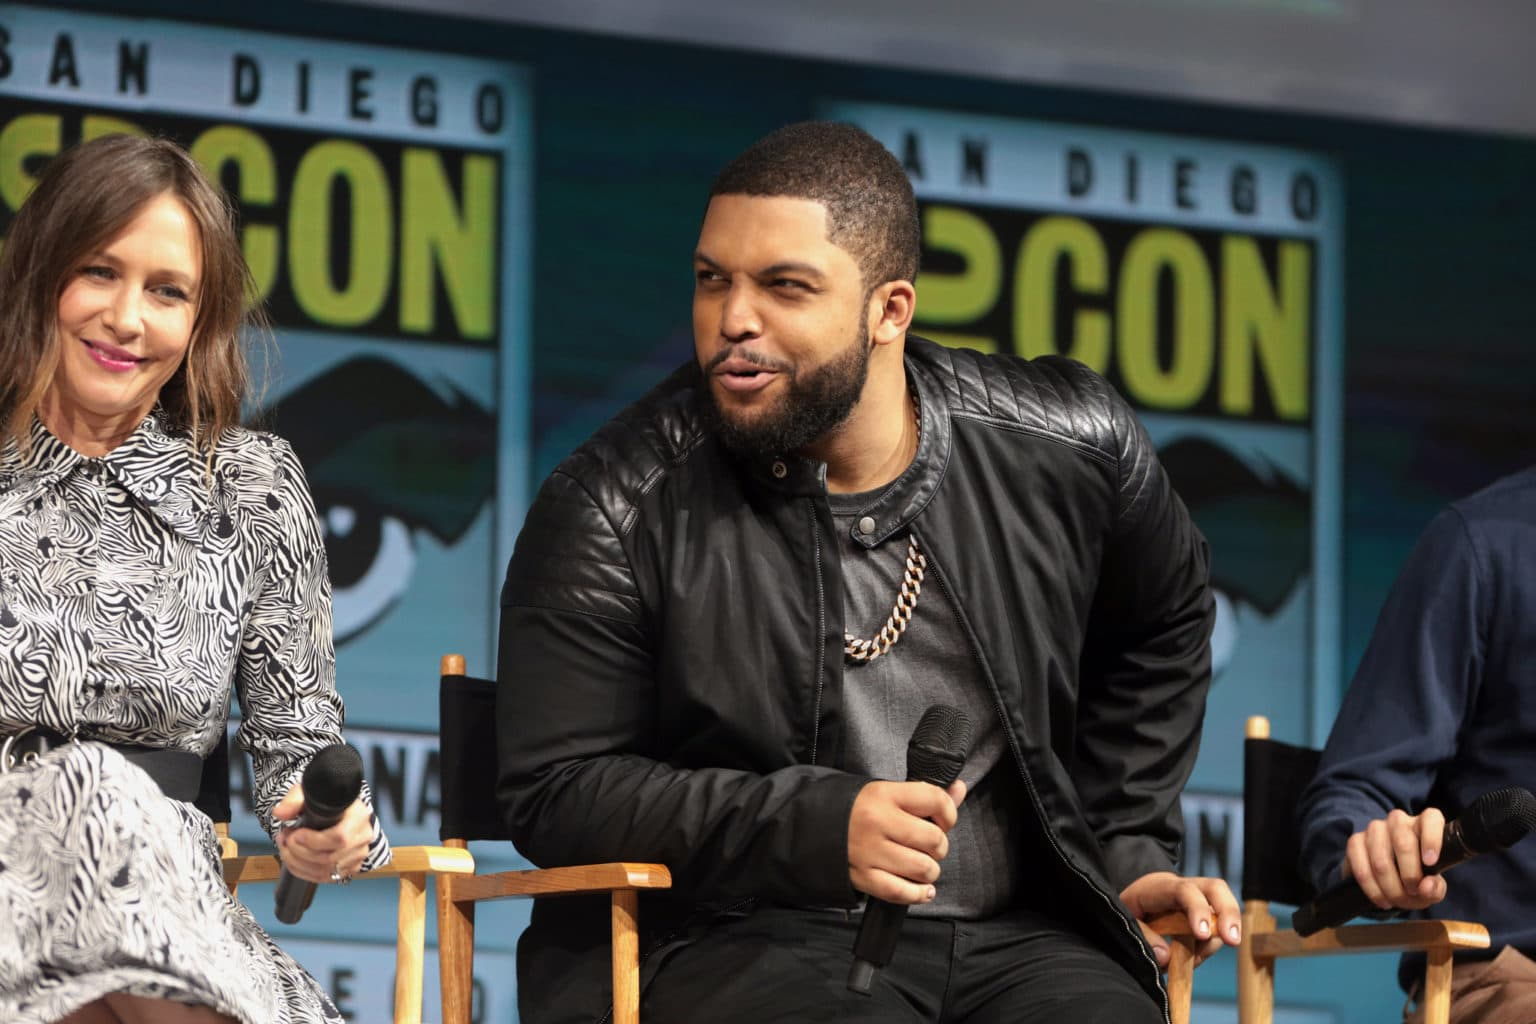 O'Shea Jackson Jr. is bringing his swagger to Apple TV+ basketball show,